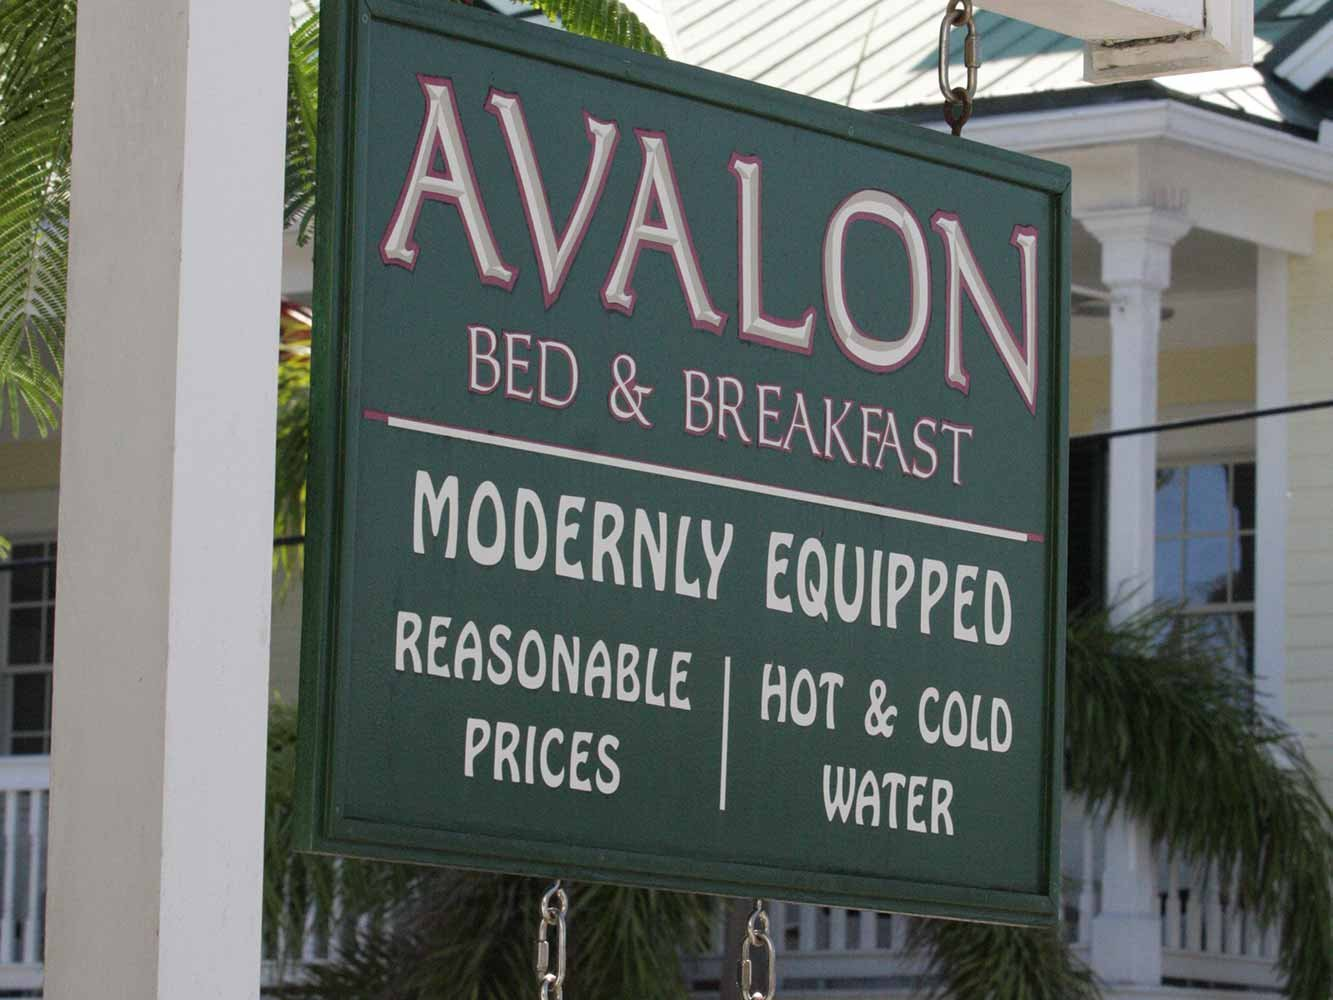 Avalon Bed & Breakfast - Modernly Equipped, Reasonable Prices, Hot & Cold Water